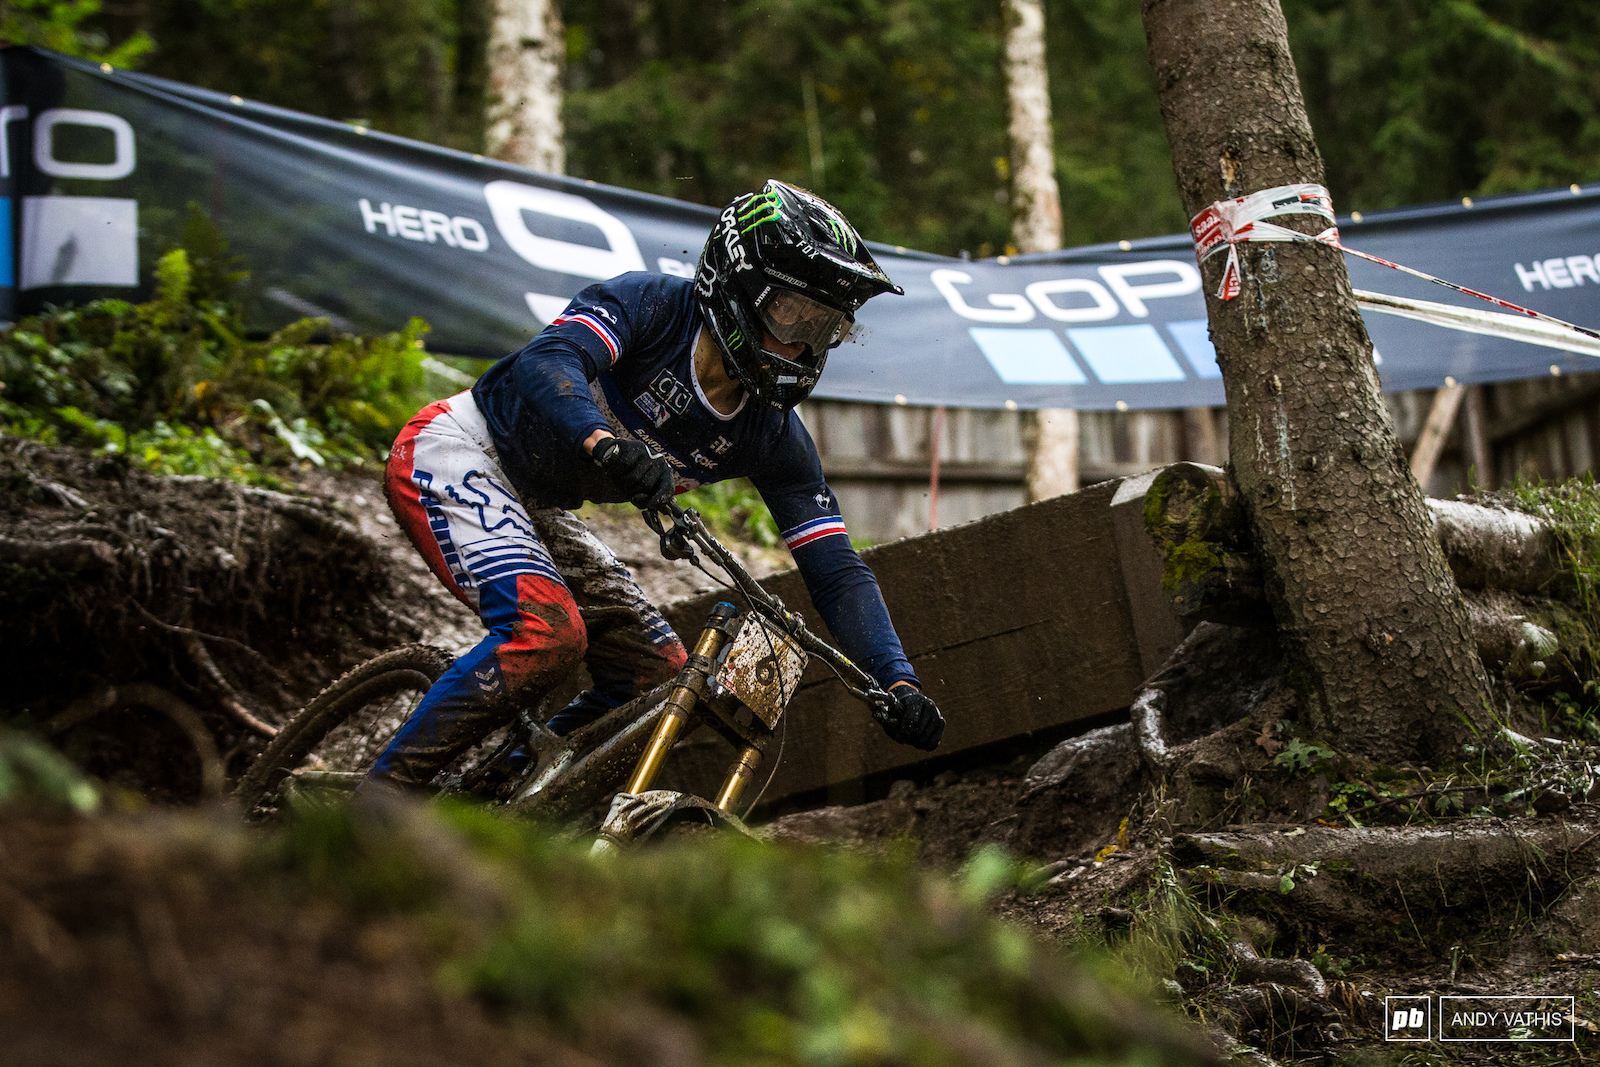 Loris Vergier put down a blistering time in qualie s. The deteriorating track conditions had him sitting further back in finals in 10th.